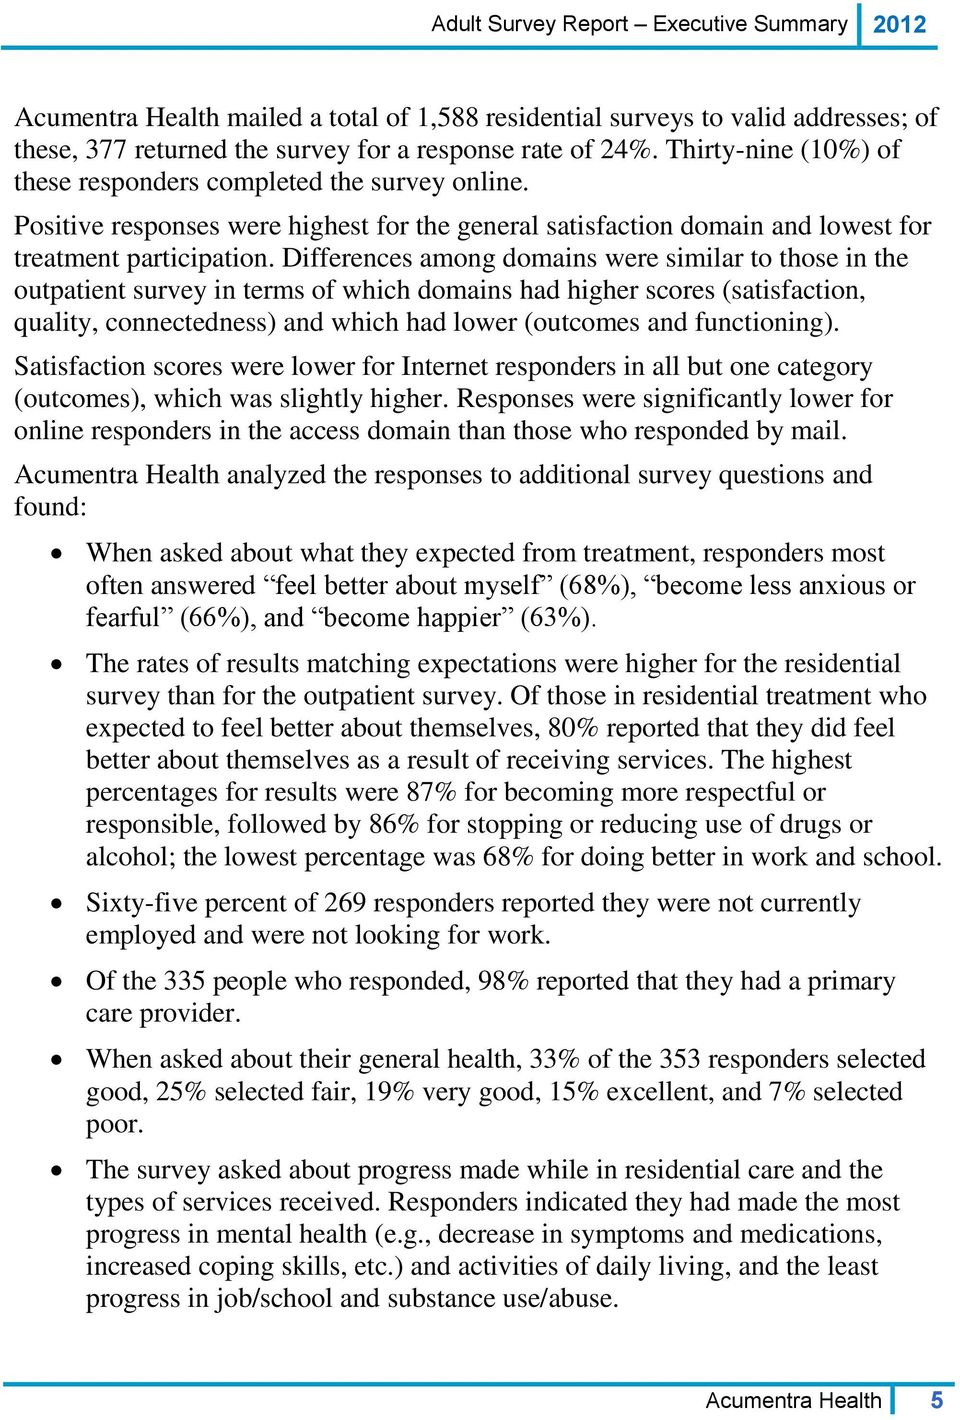 Differences among domains were similar to those in the outpatient survey in terms of which domains had higher scores (satisfaction, quality, connectedness) and which had lower (outcomes and